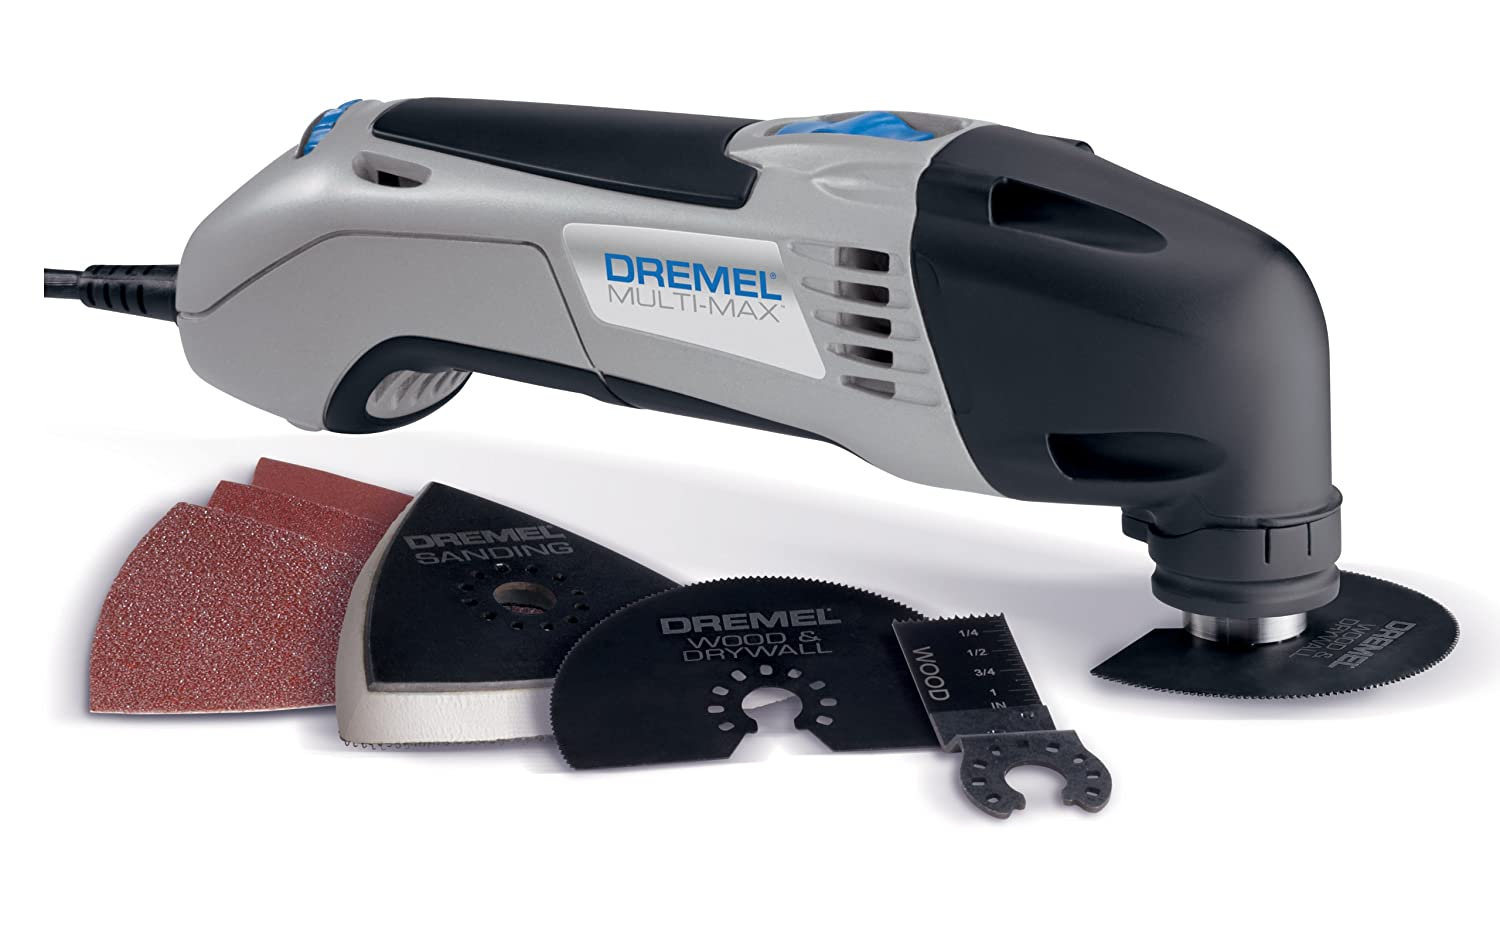 Location Dremel Walmart Dremel Multi Max 40 00 Clearance At Barrhaven